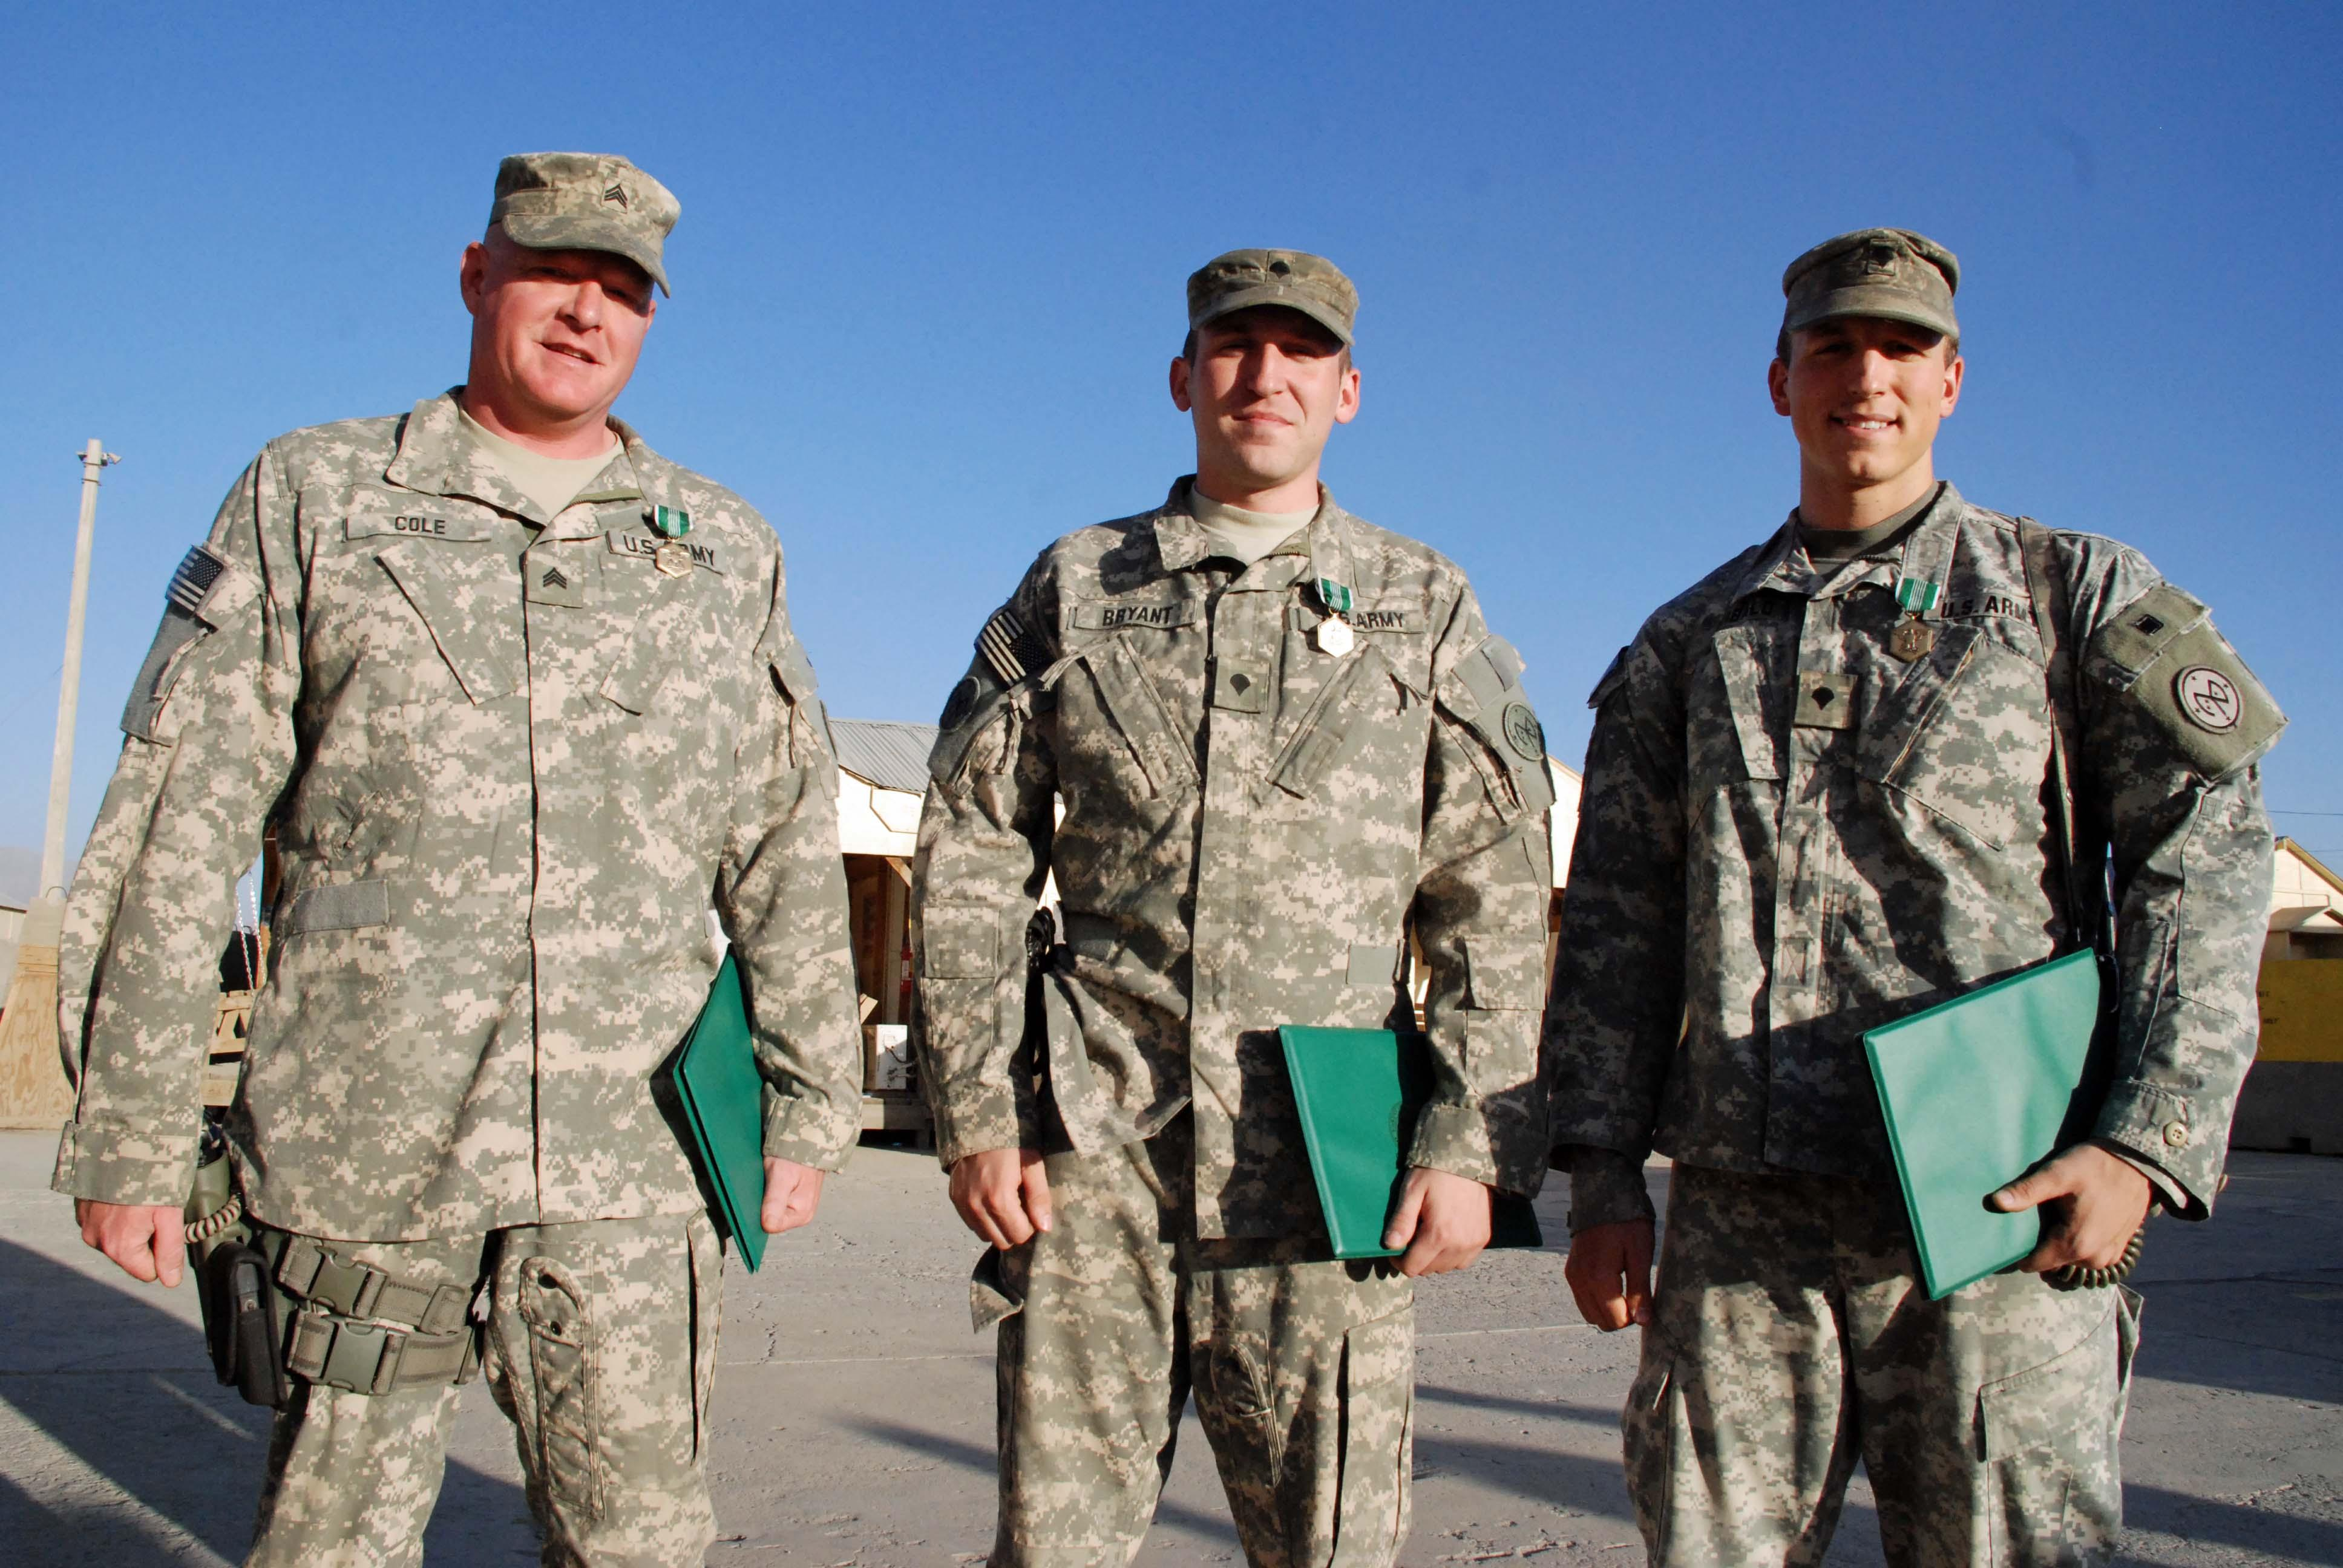 CJTF-Phoenix%20Announces%20Award%20Recipients%20for%20Afghan%20Service